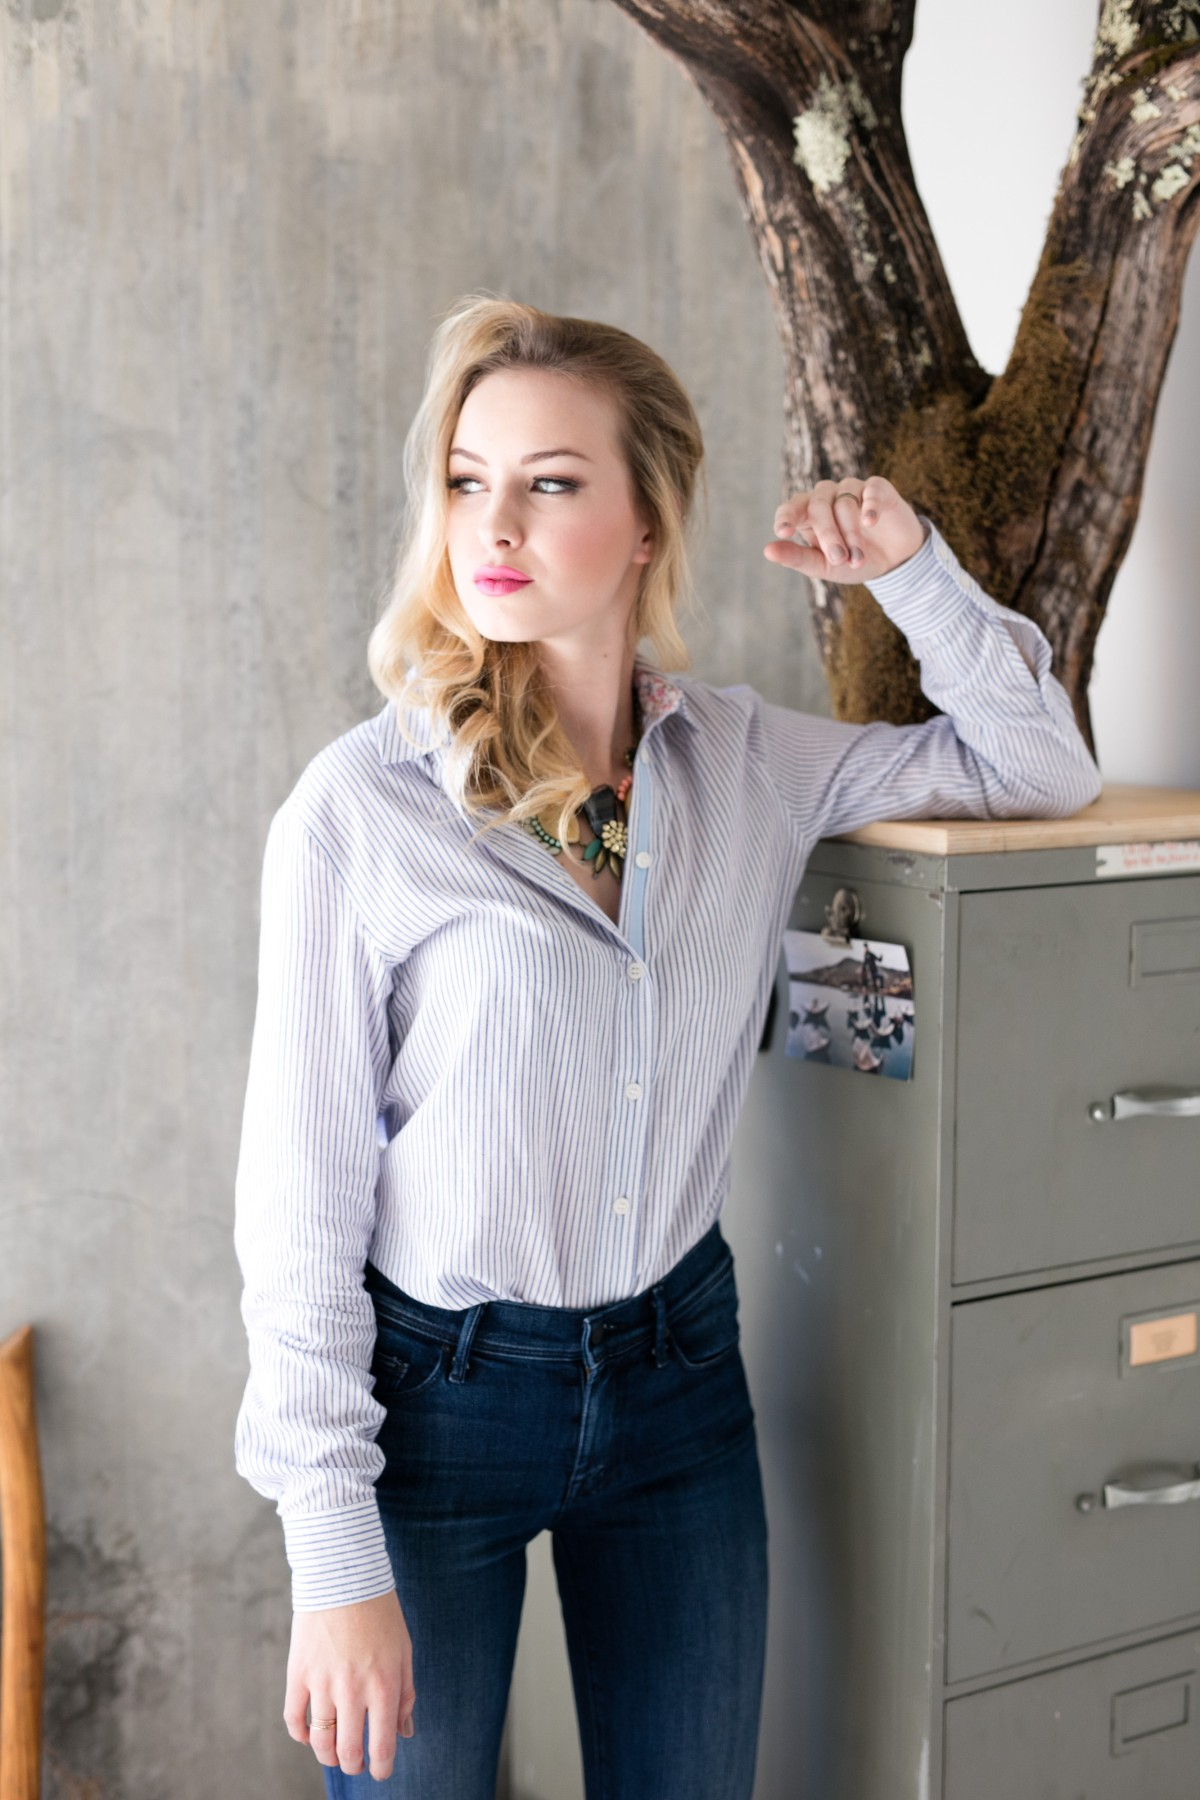 7f7d172aec92 ... wardrobe staple, the versatile button down shirt! Eponymous with the  hardworking, fashion loving, creative heart and soul of the owner of Evy's  Tree, ...